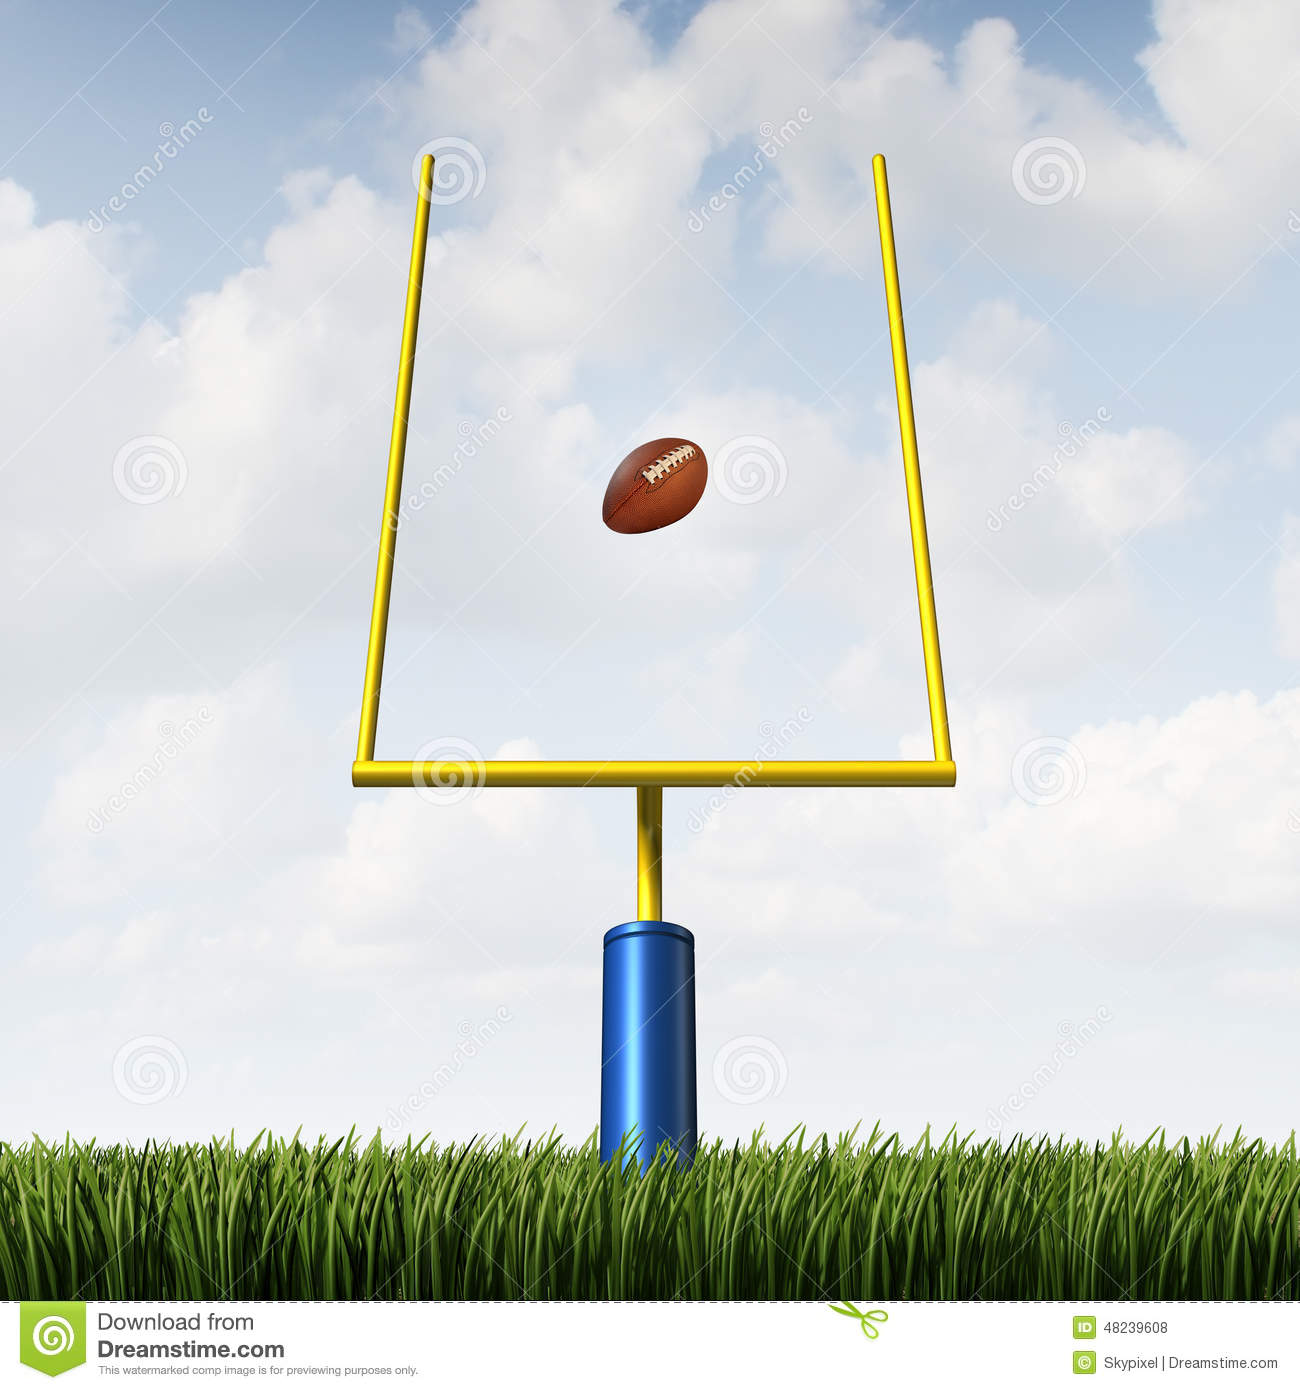 how to draw a football field goal